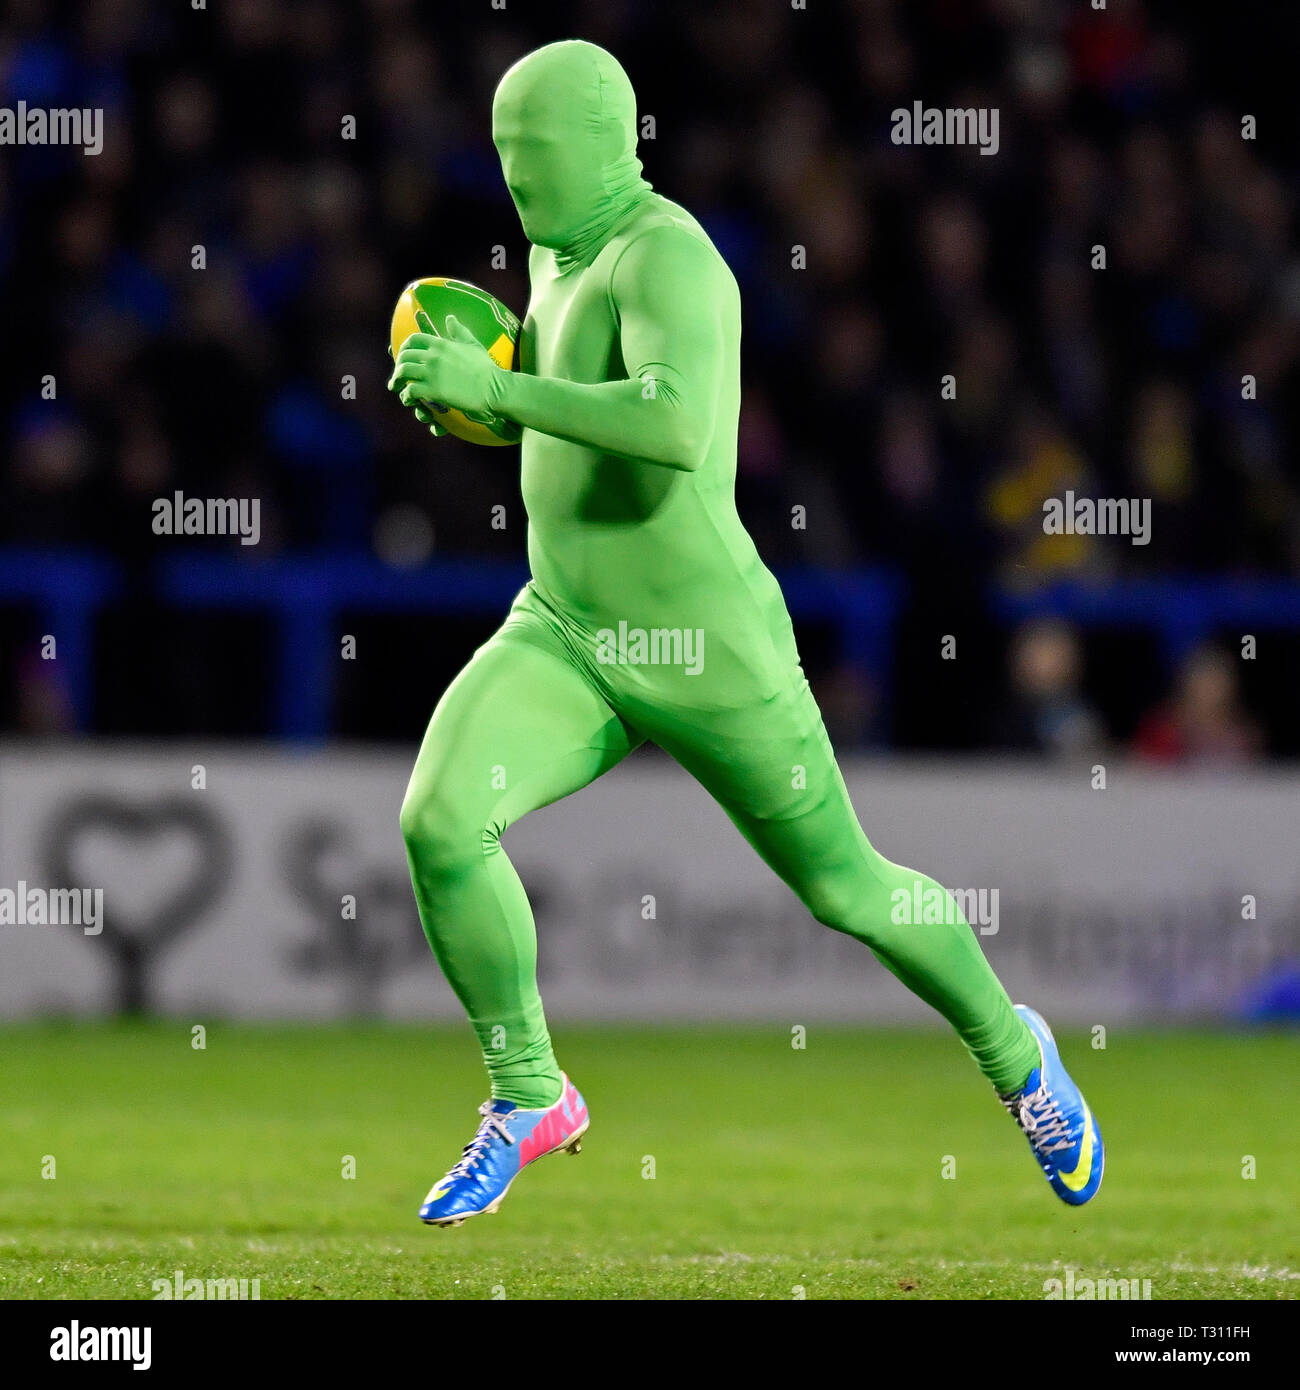 Stade Halliwell Jones, Warrington, Royaume-Uni. 5ème apr 2019. Super League rugby Betfred, Warrington Wolves contre London Broncos ; la moitié de temps à Warrington Wolves fil 'Flyer' Credit : Action Plus Sport/Alamy Live News Photo Stock